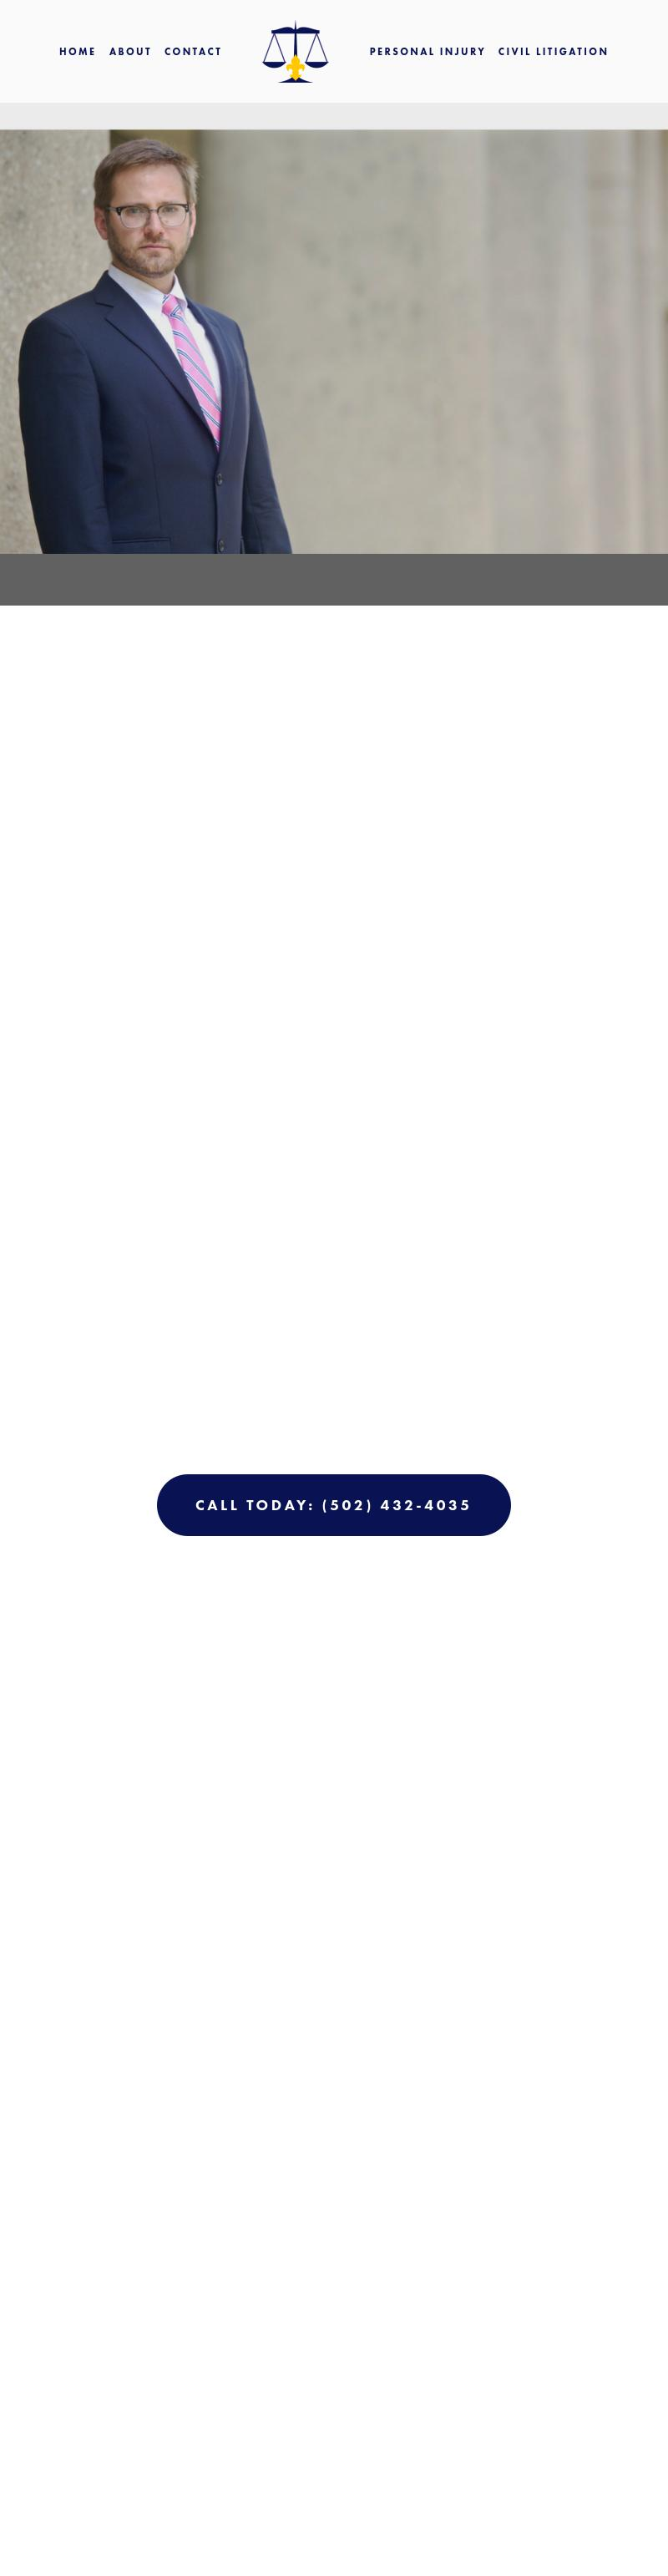 Bryan R. Armstrong Attorney at Law - Louisville KY Lawyers